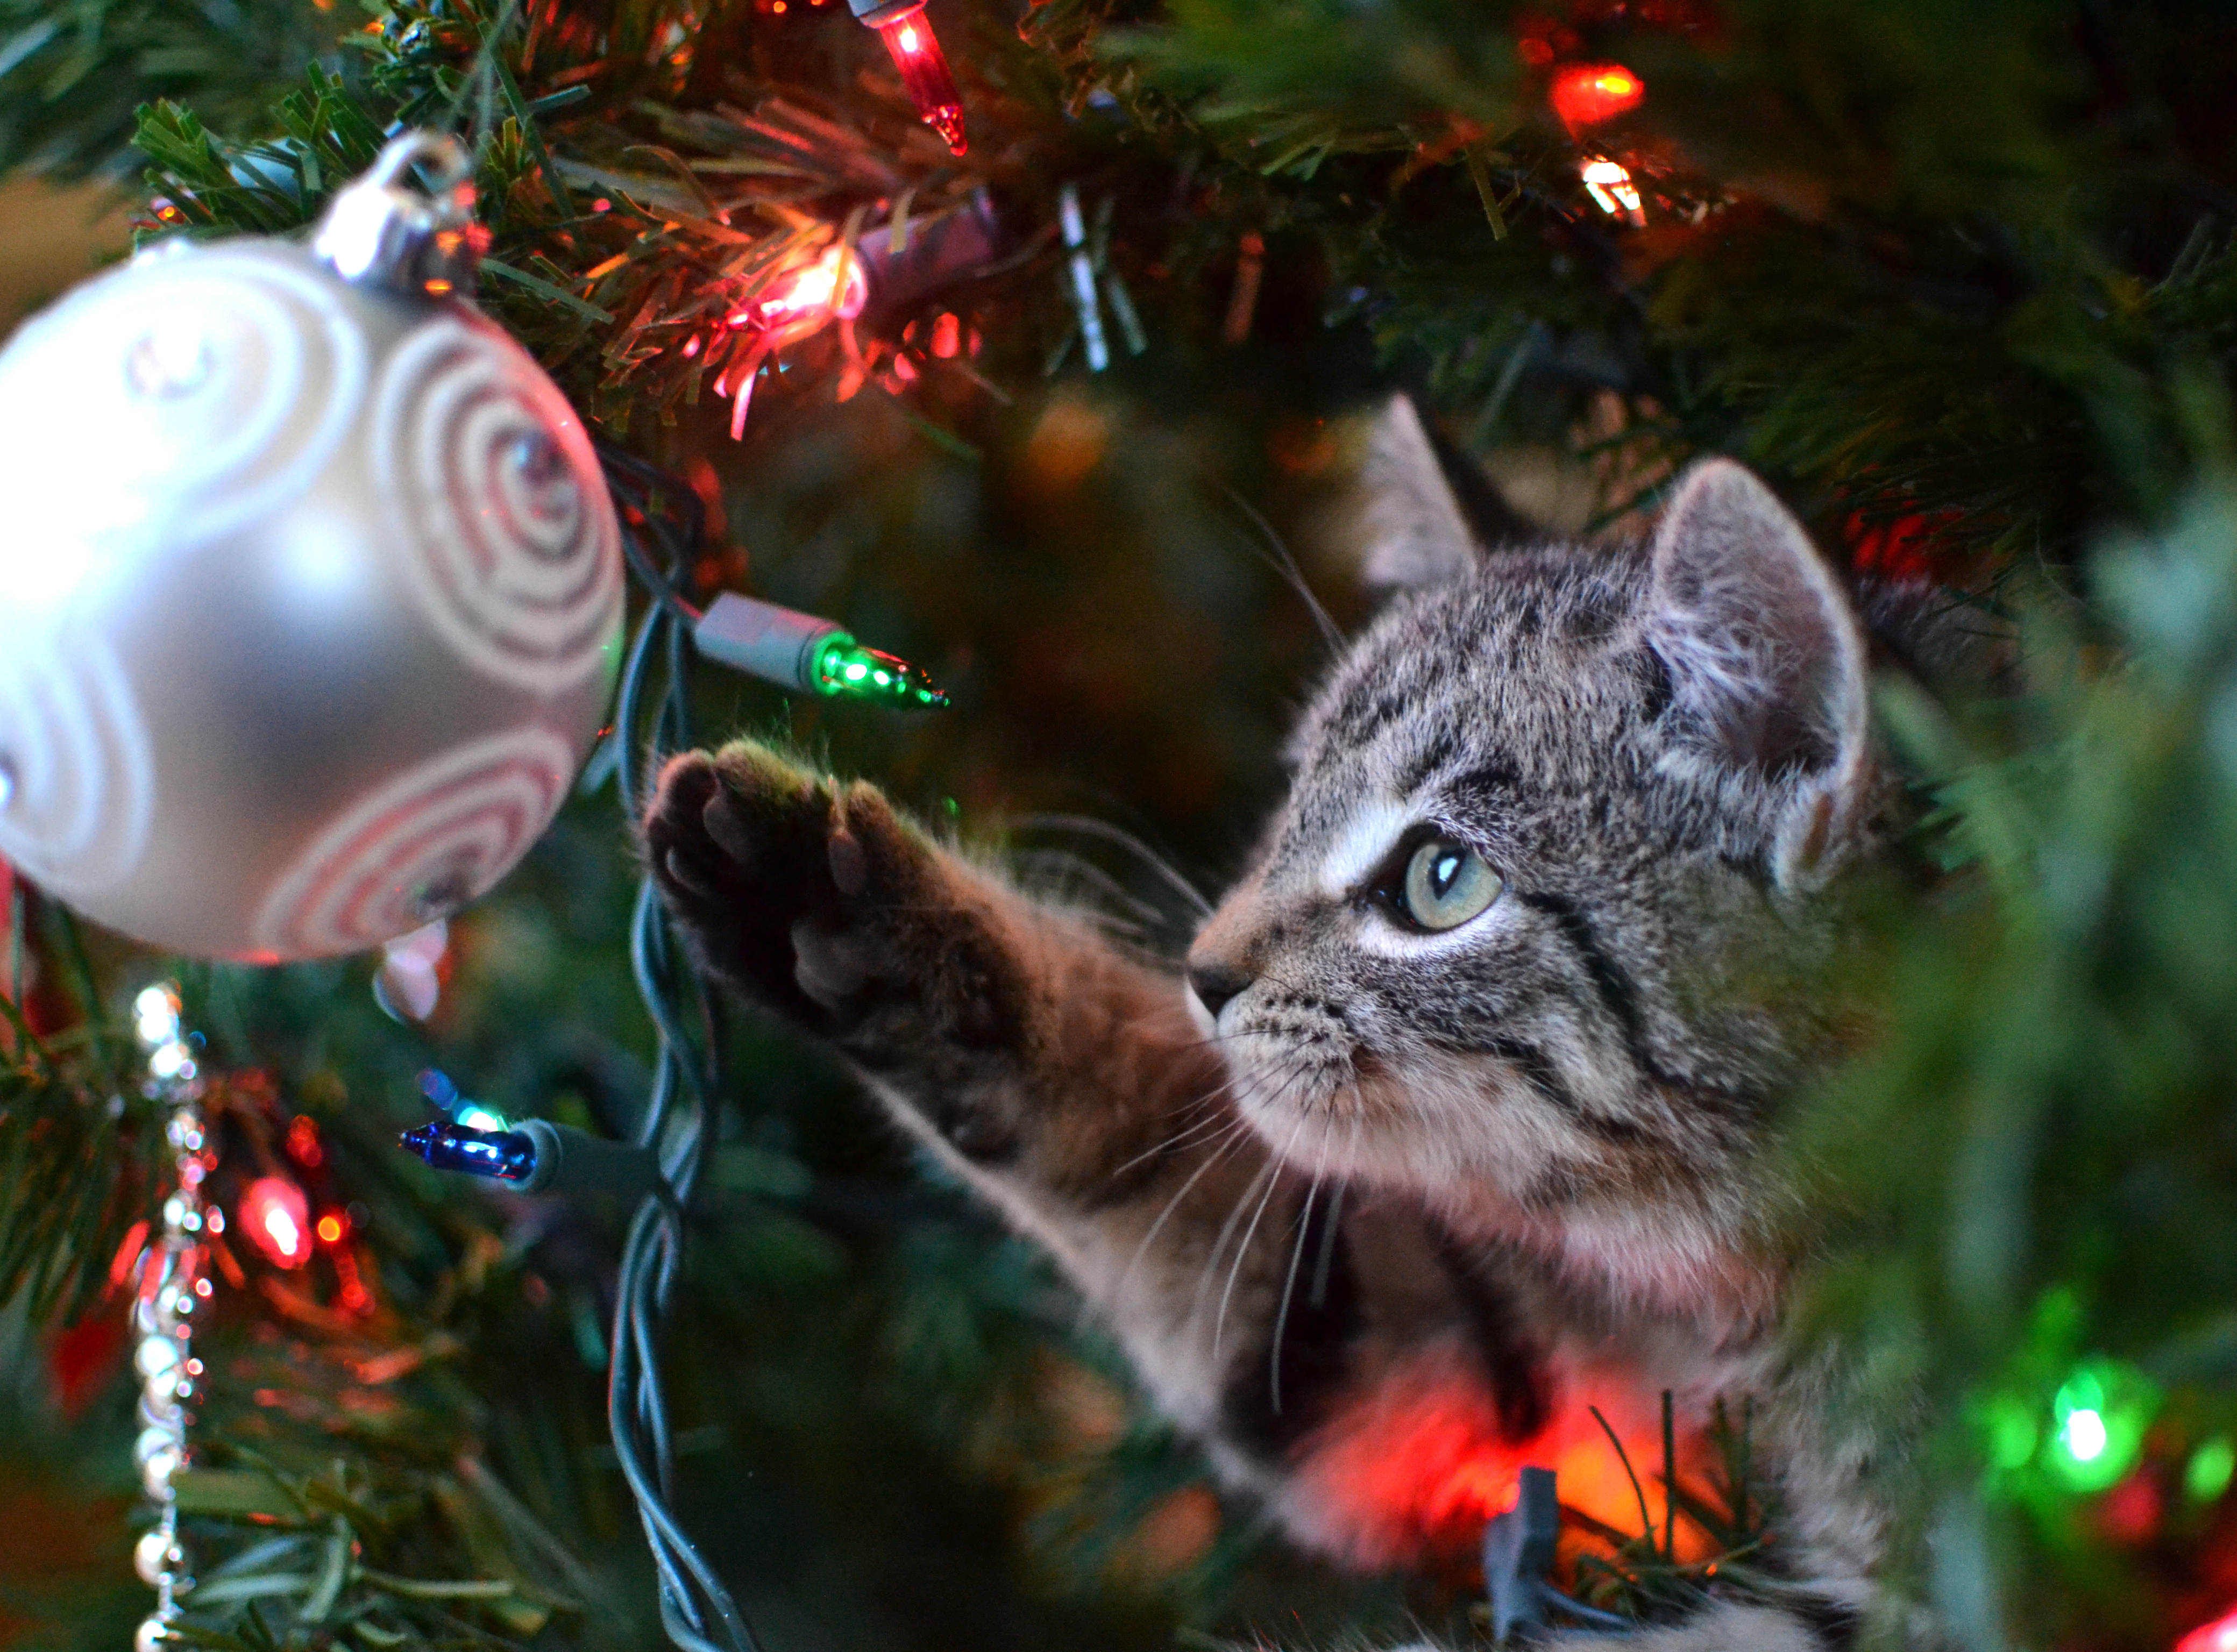 Grey tabby kitten playing with ornament in Christmas tree